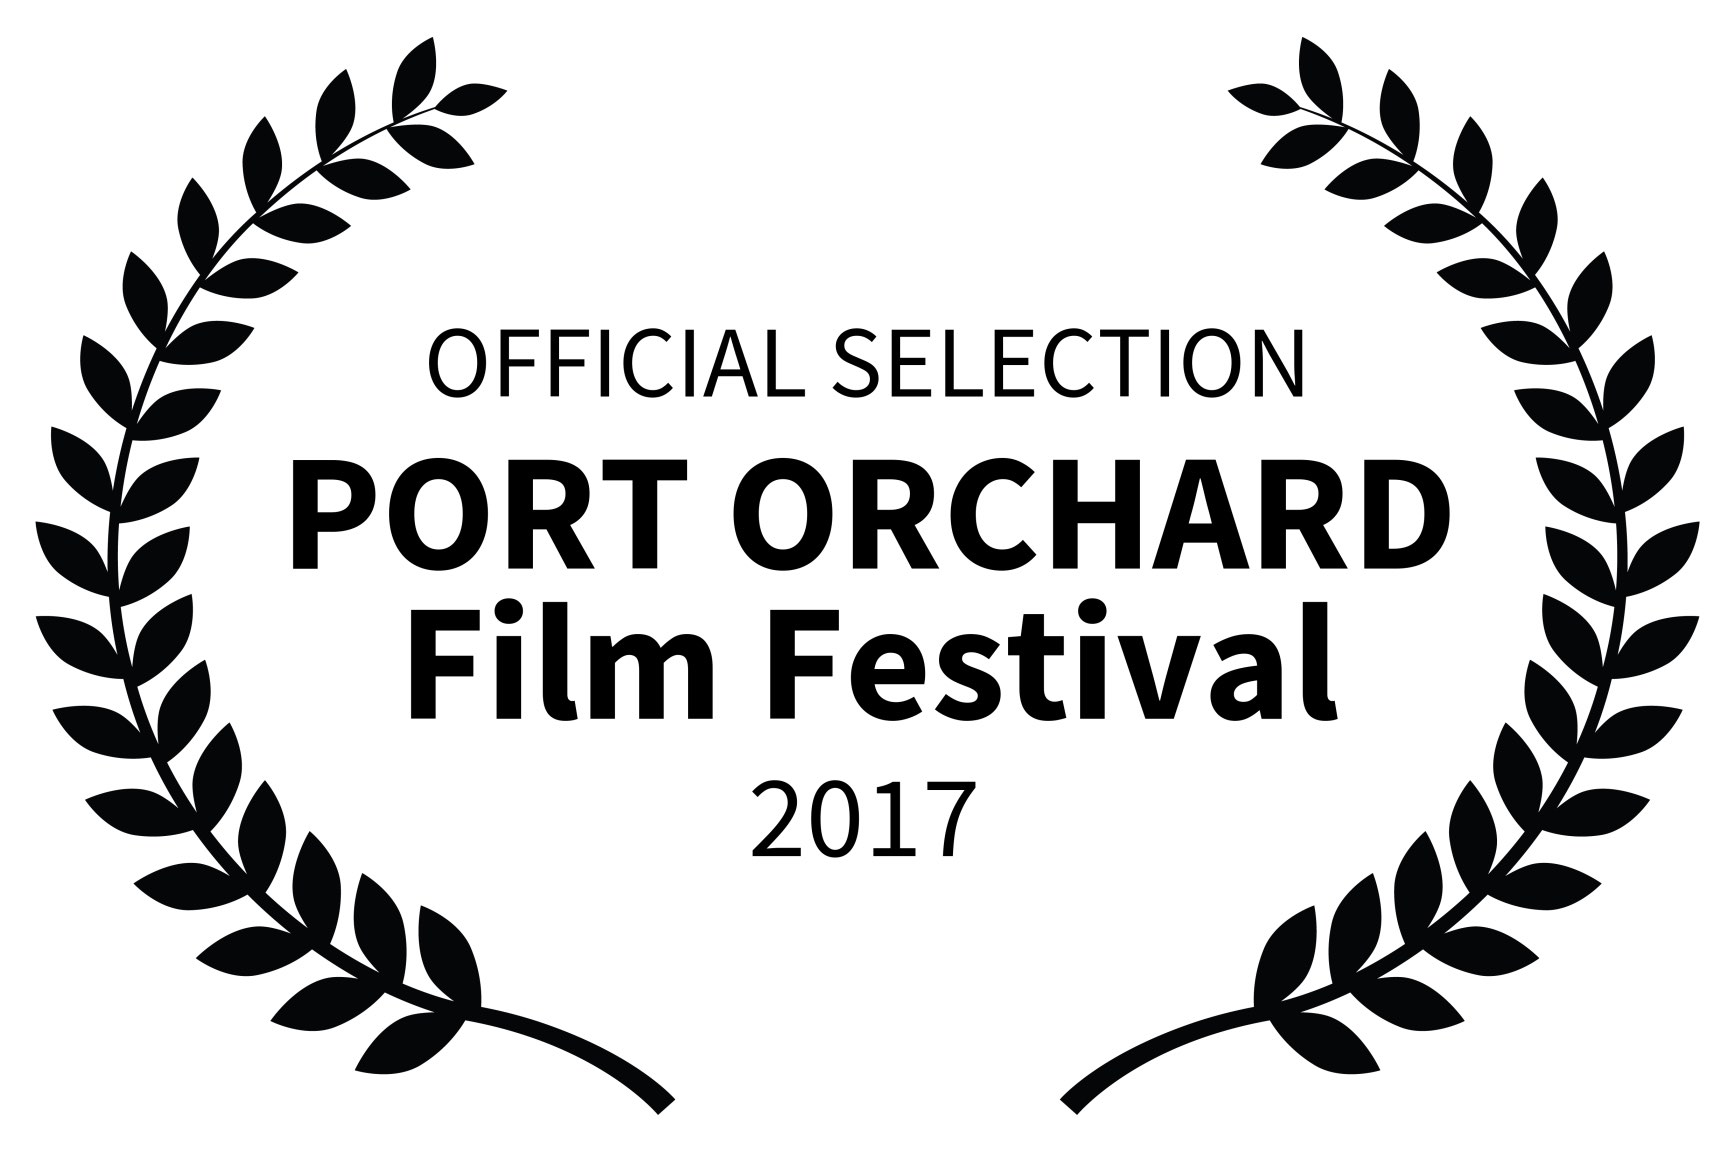 OFFICIAL-SELECTION-PORT-ORCHARD-Film-Festival-2017 OFFICIAL SELECTION - Port Orchard Film Festival (Seattle)